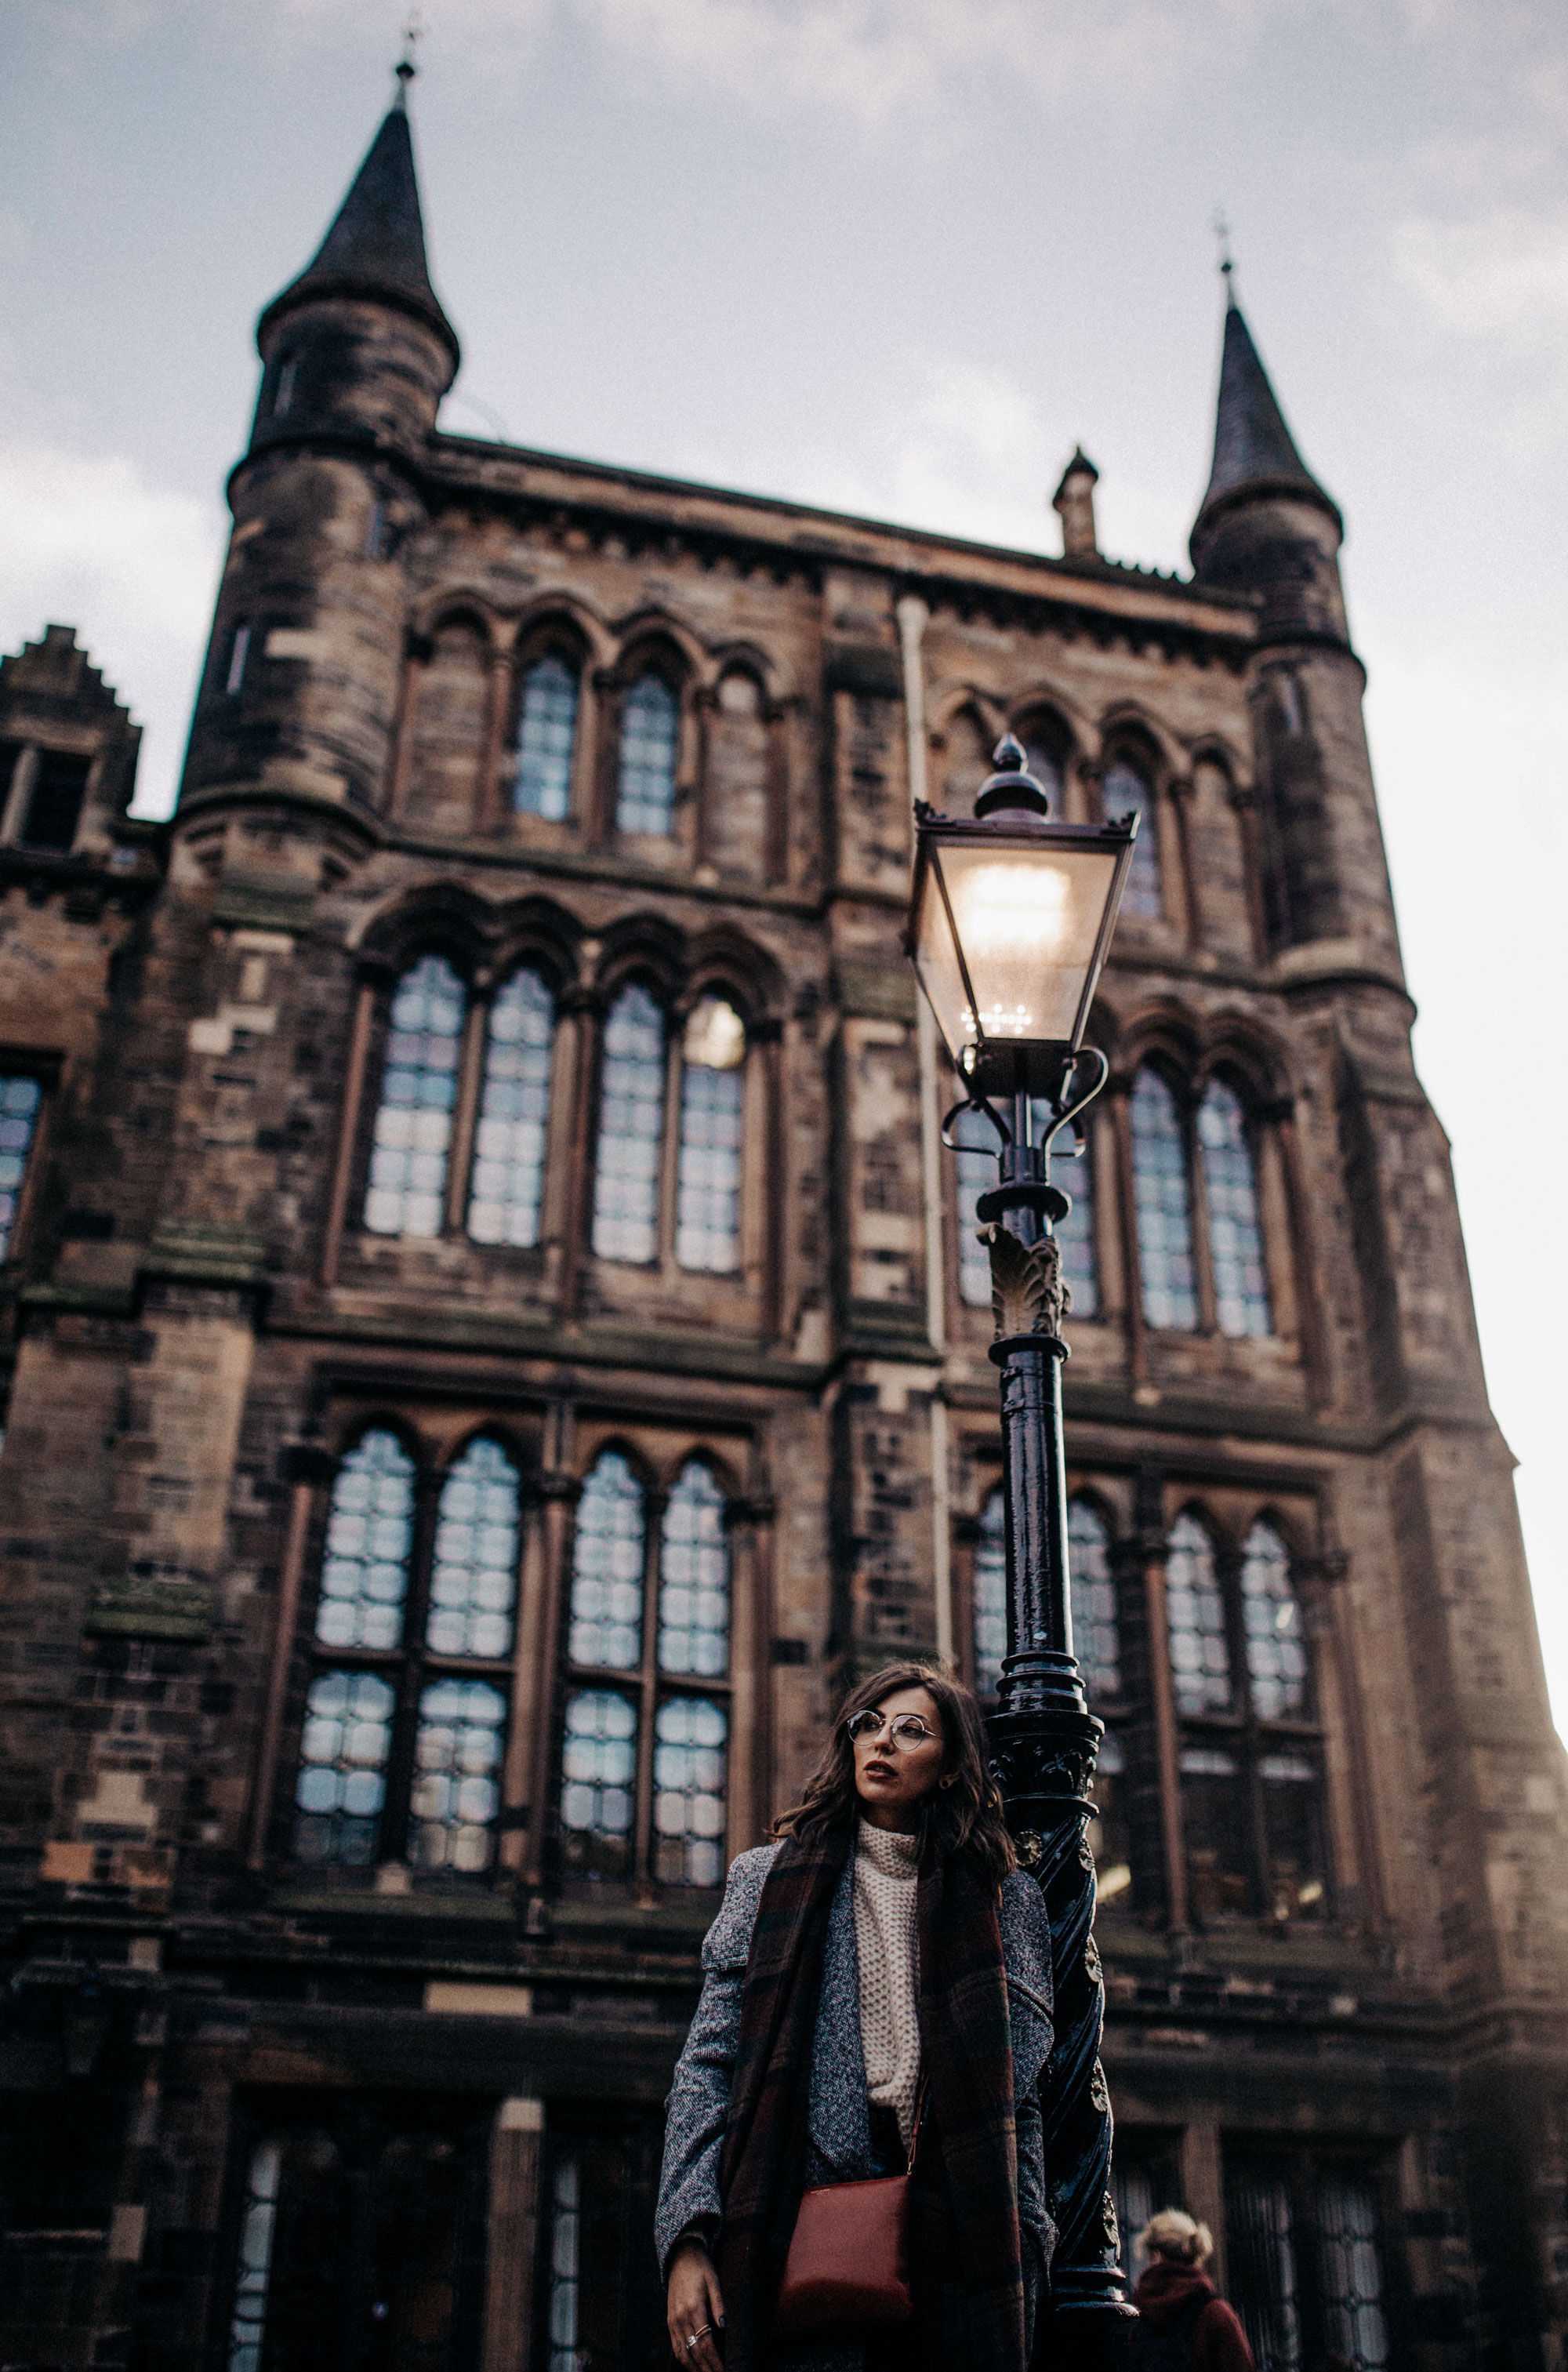 Glasgow Universität | Hogwarts | Harry Potter Drehort